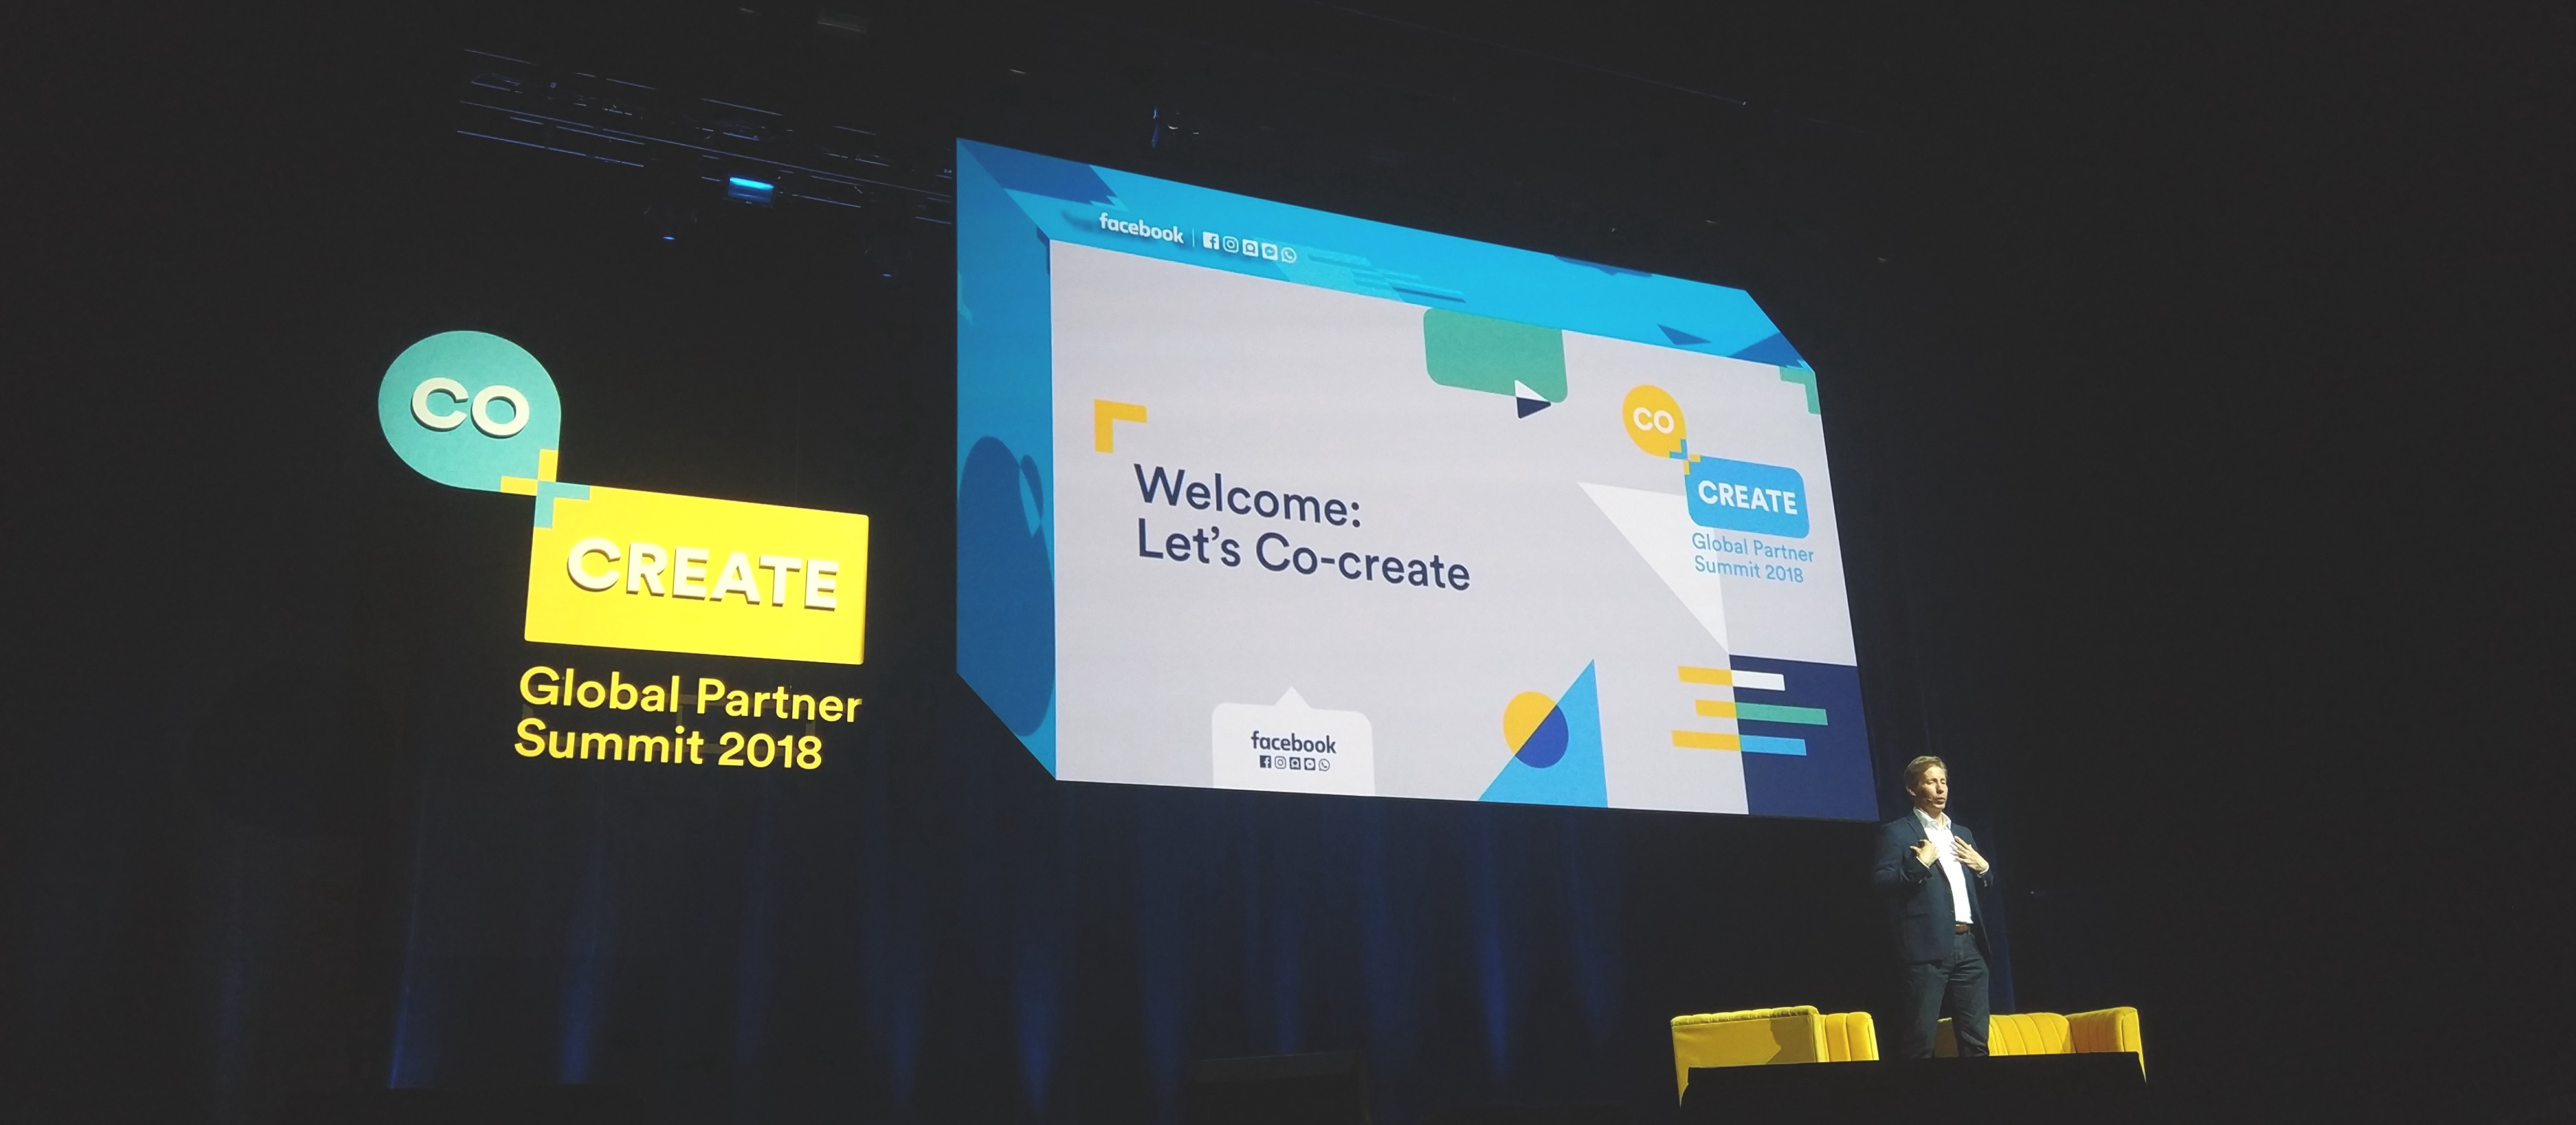 An Overview of Facebook's 2018 Global Partner Summit